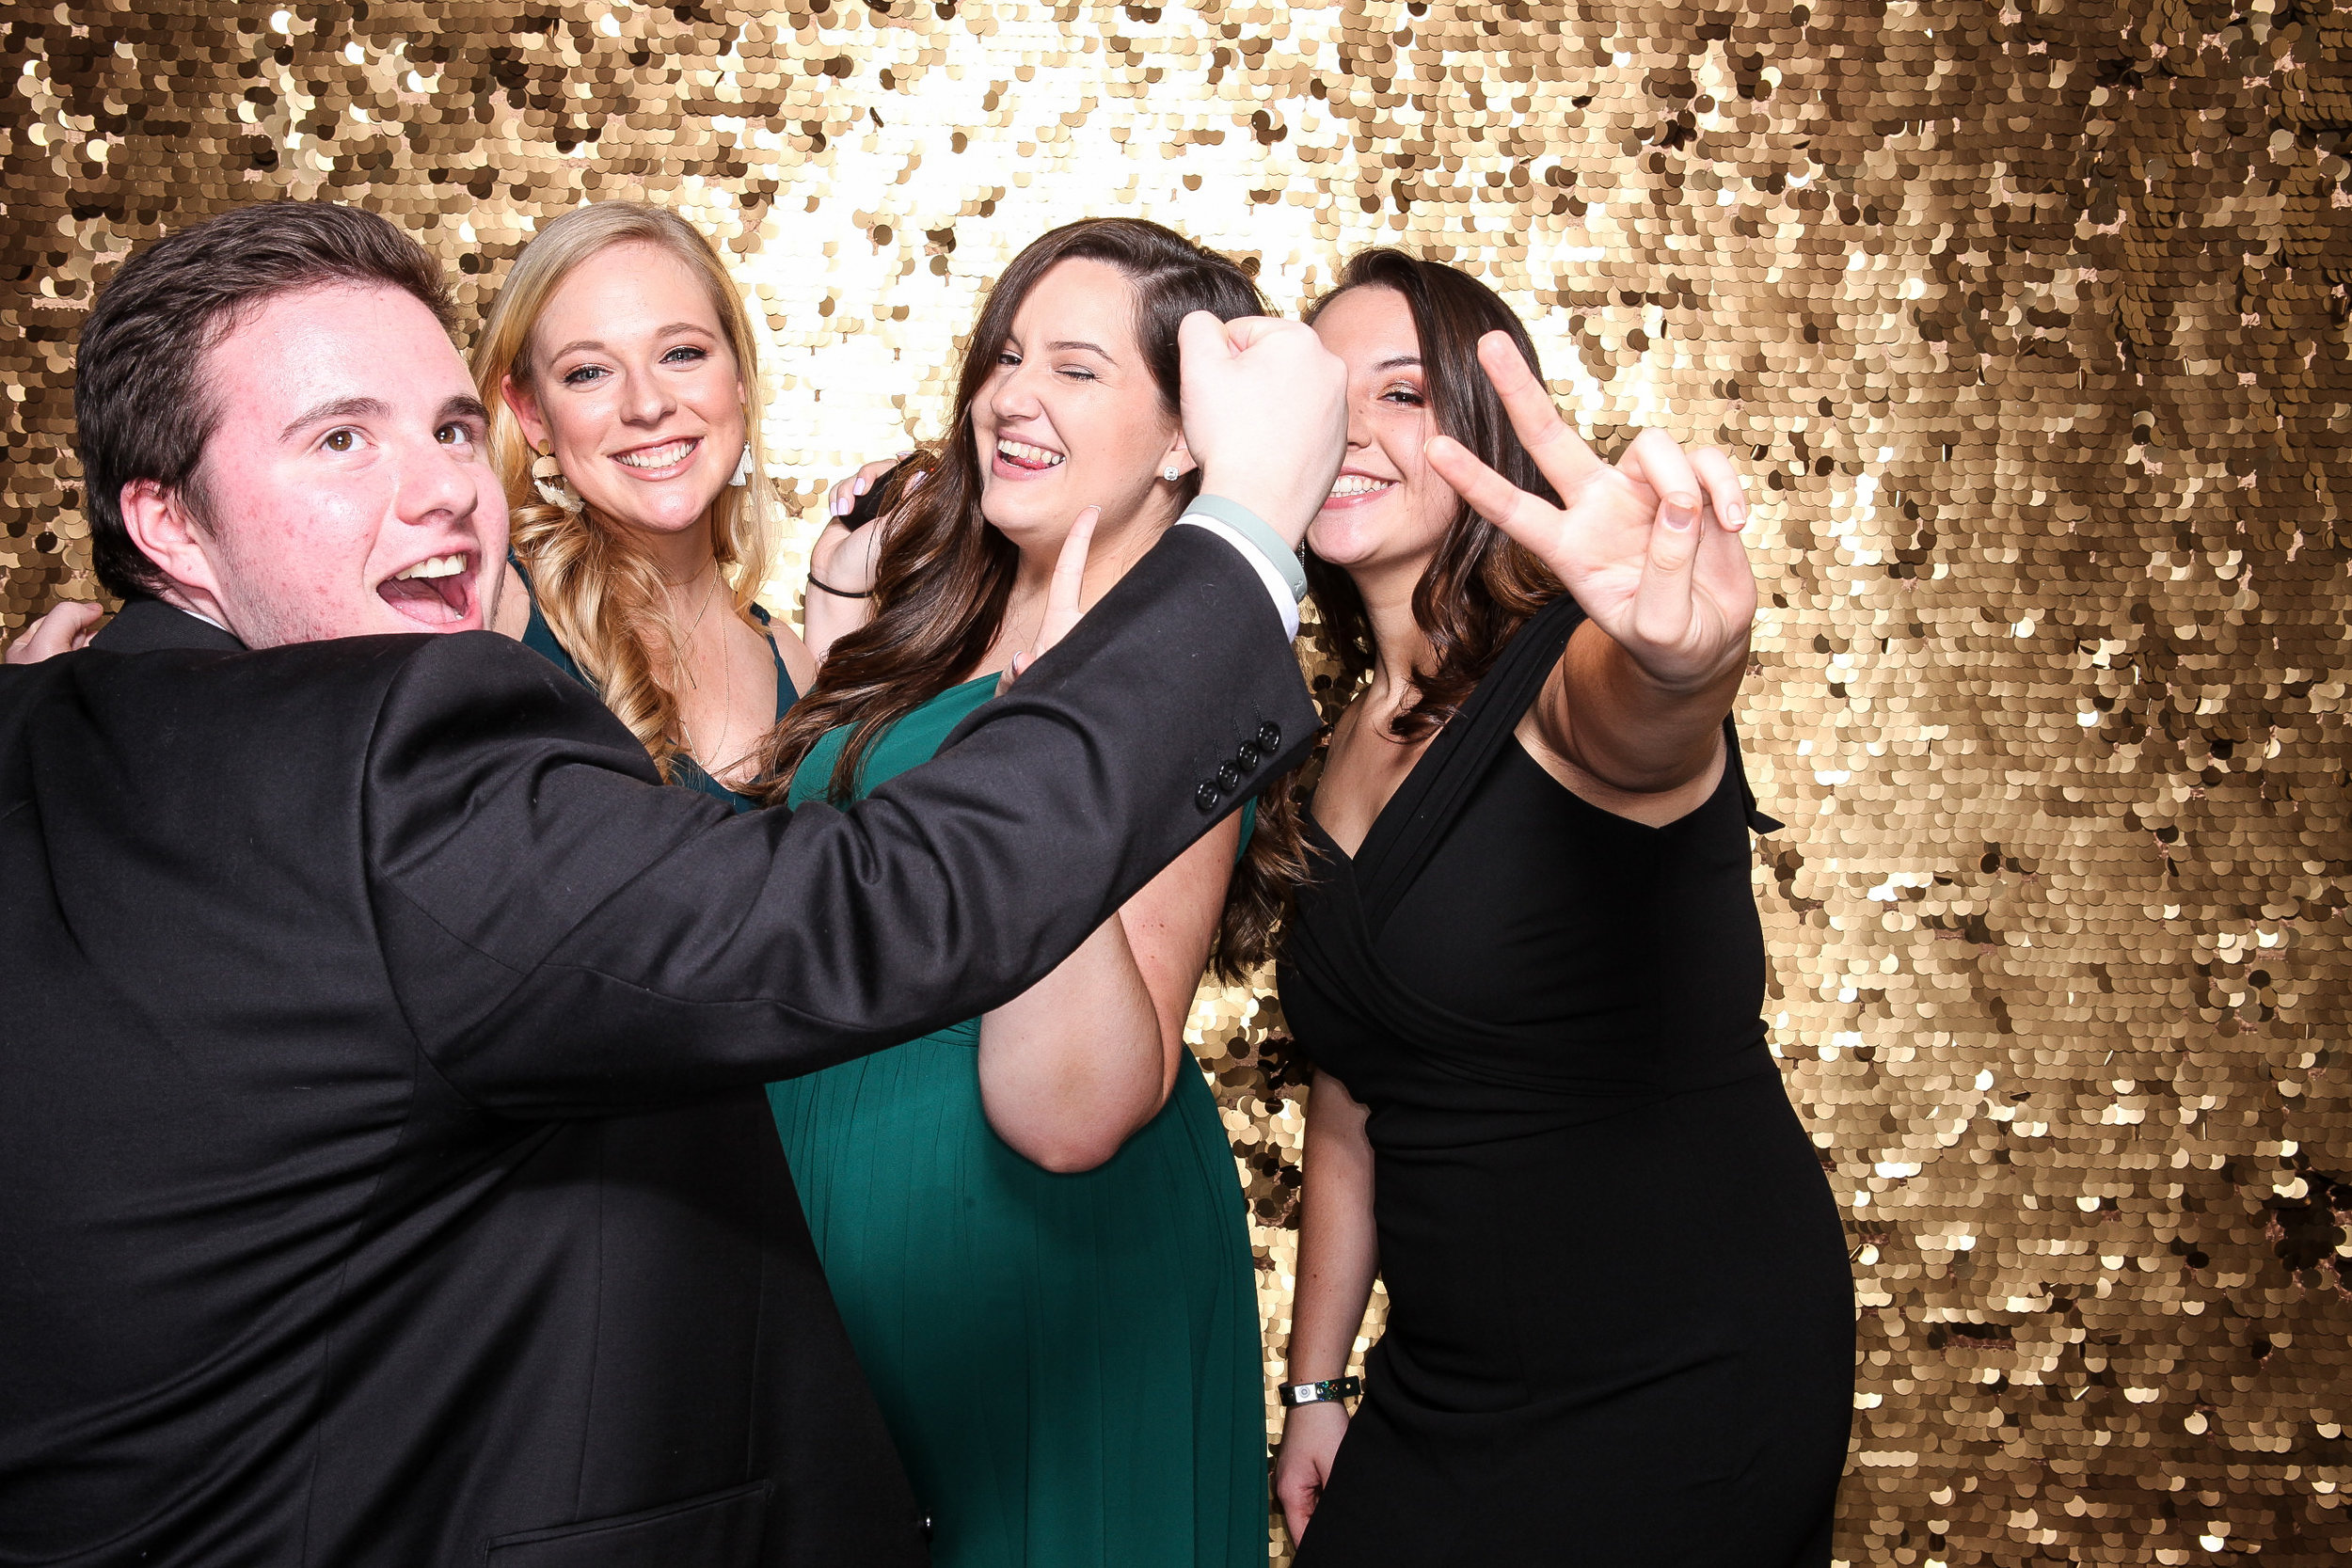 20190503_Adelphi_Senior_Formal-058.jpg